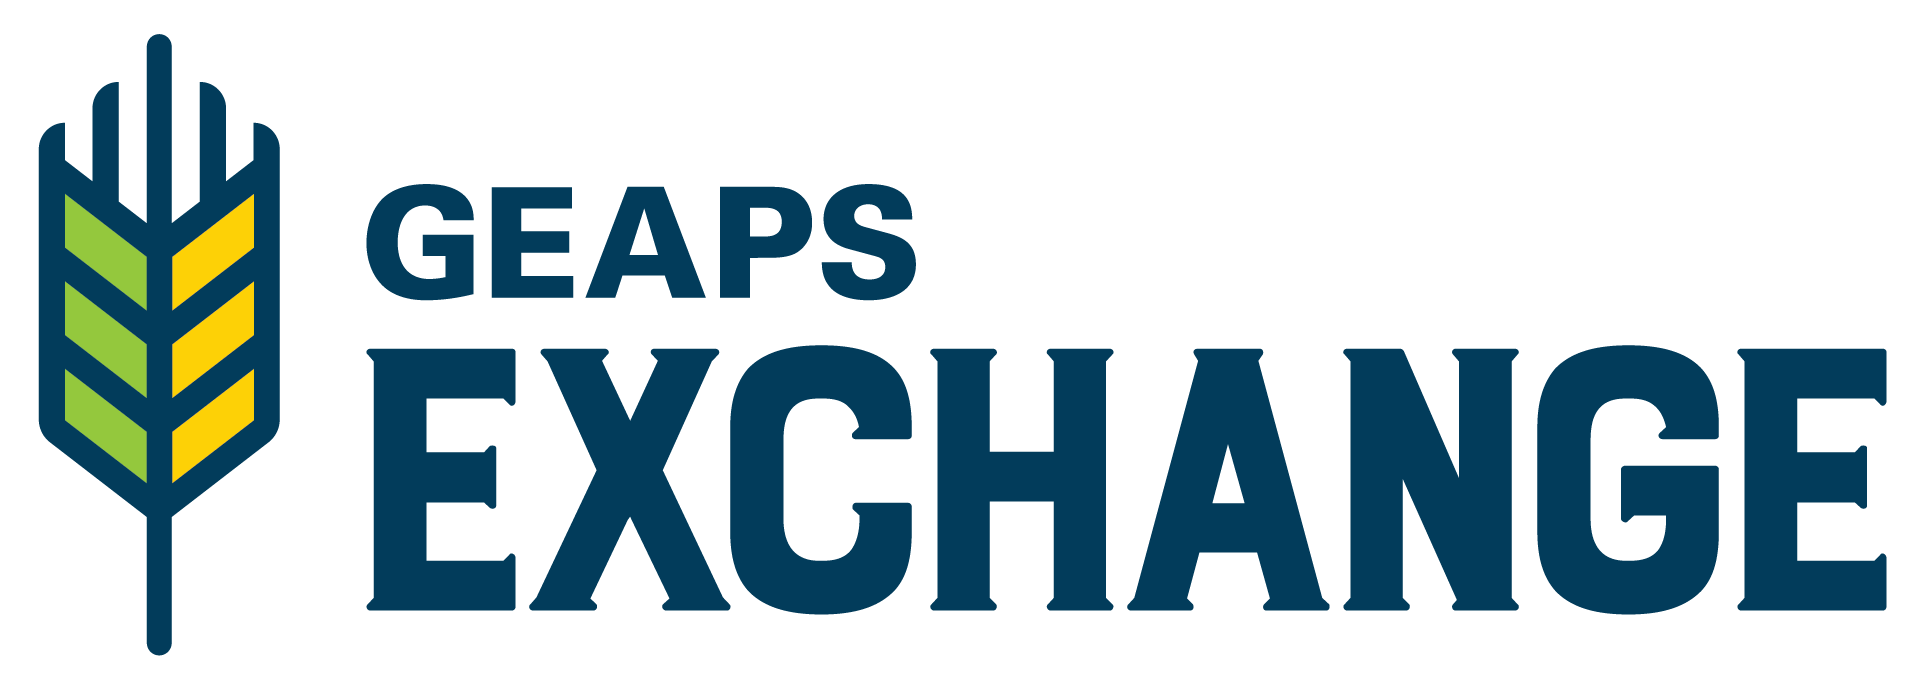 GEAPS Exchange Logo